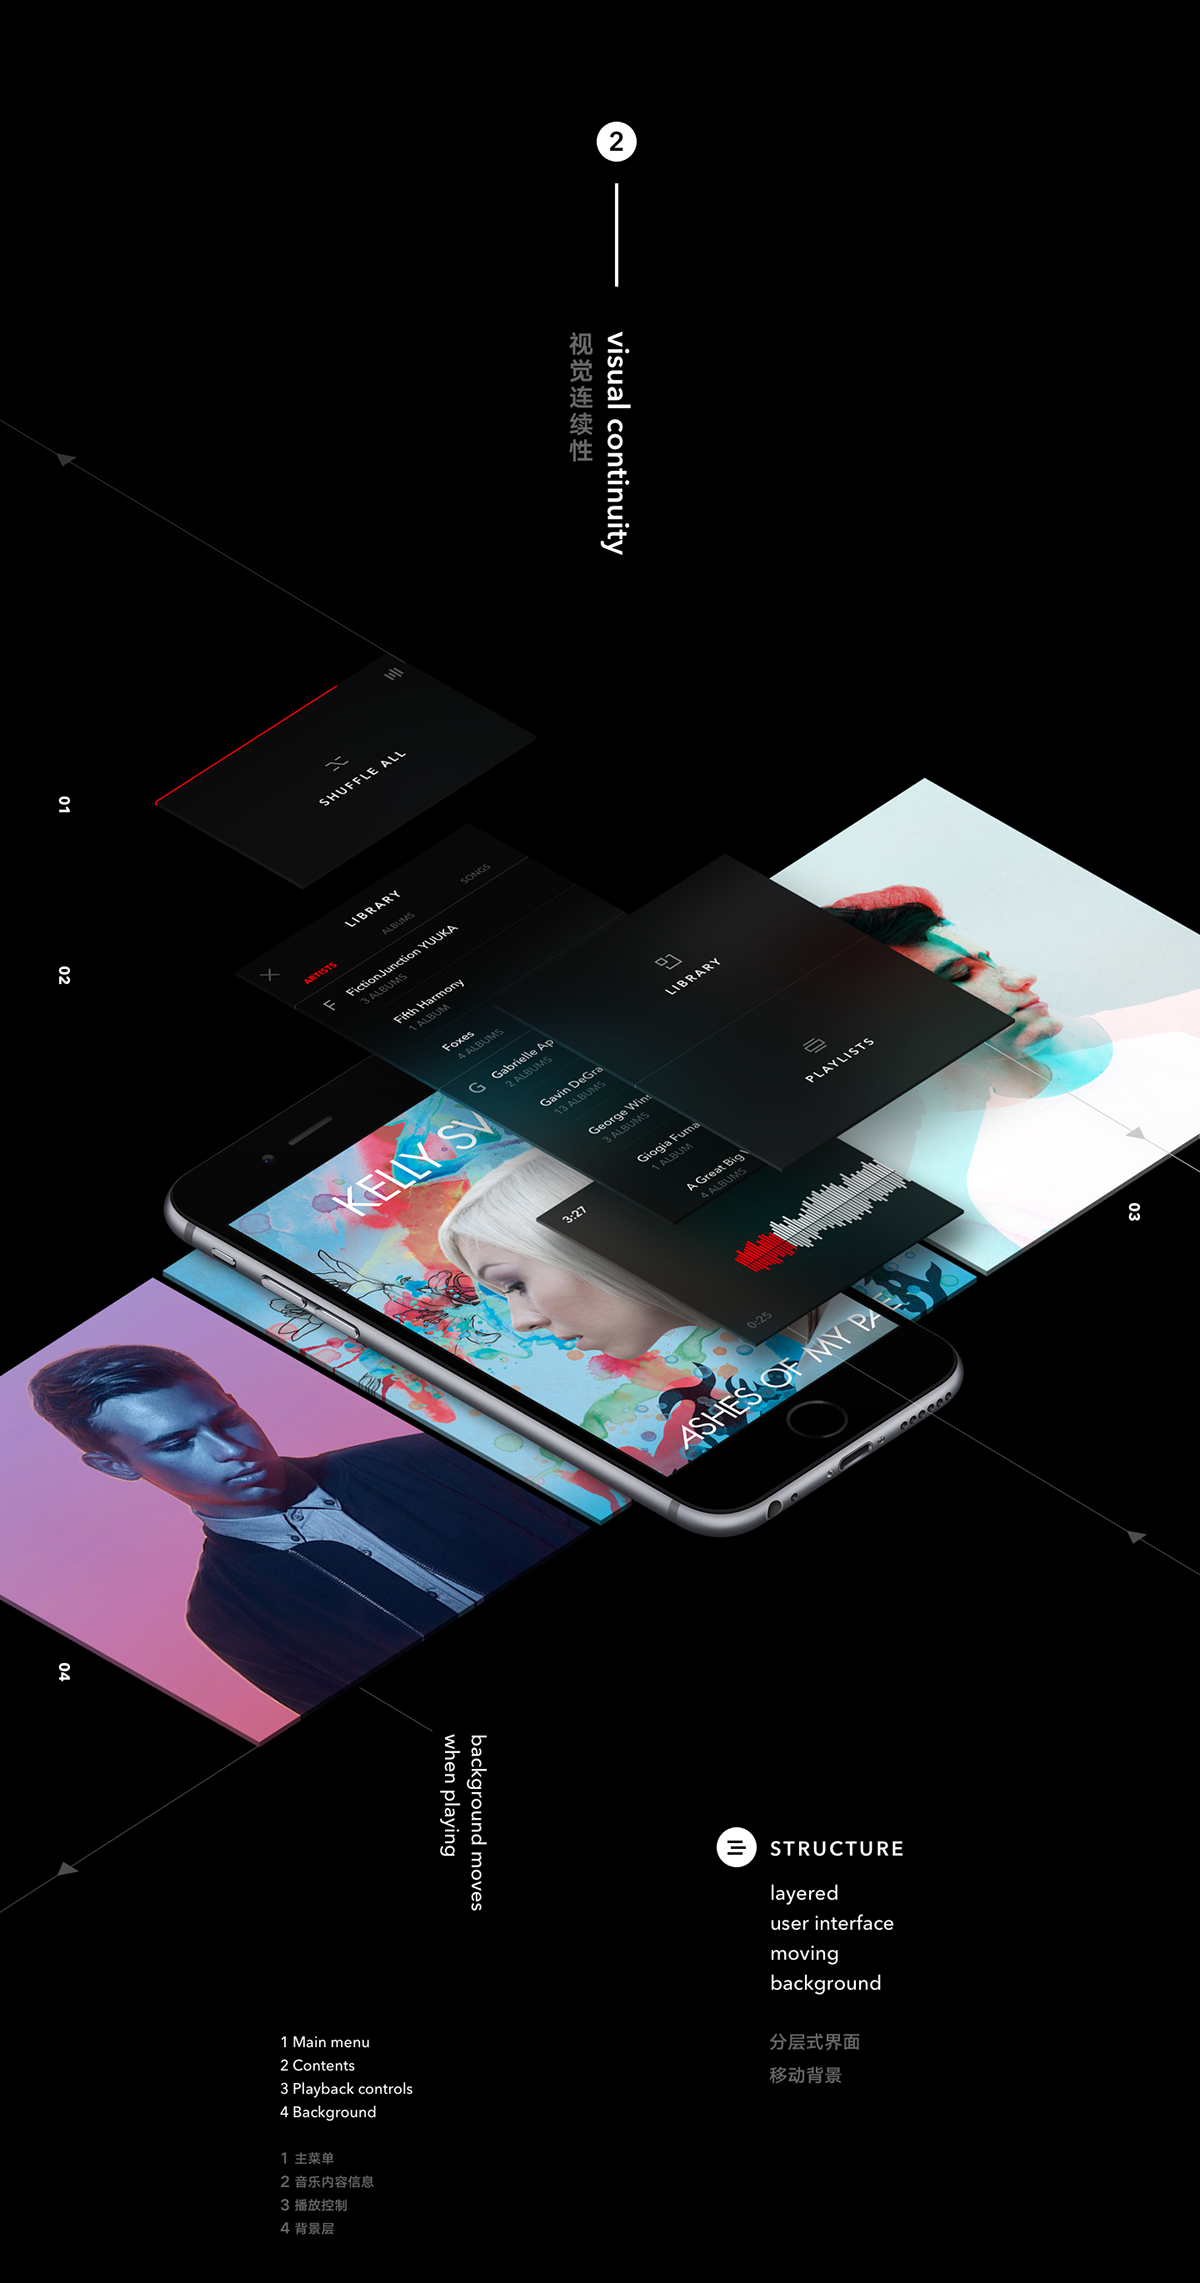 NEXT Music Player App - UI/UX